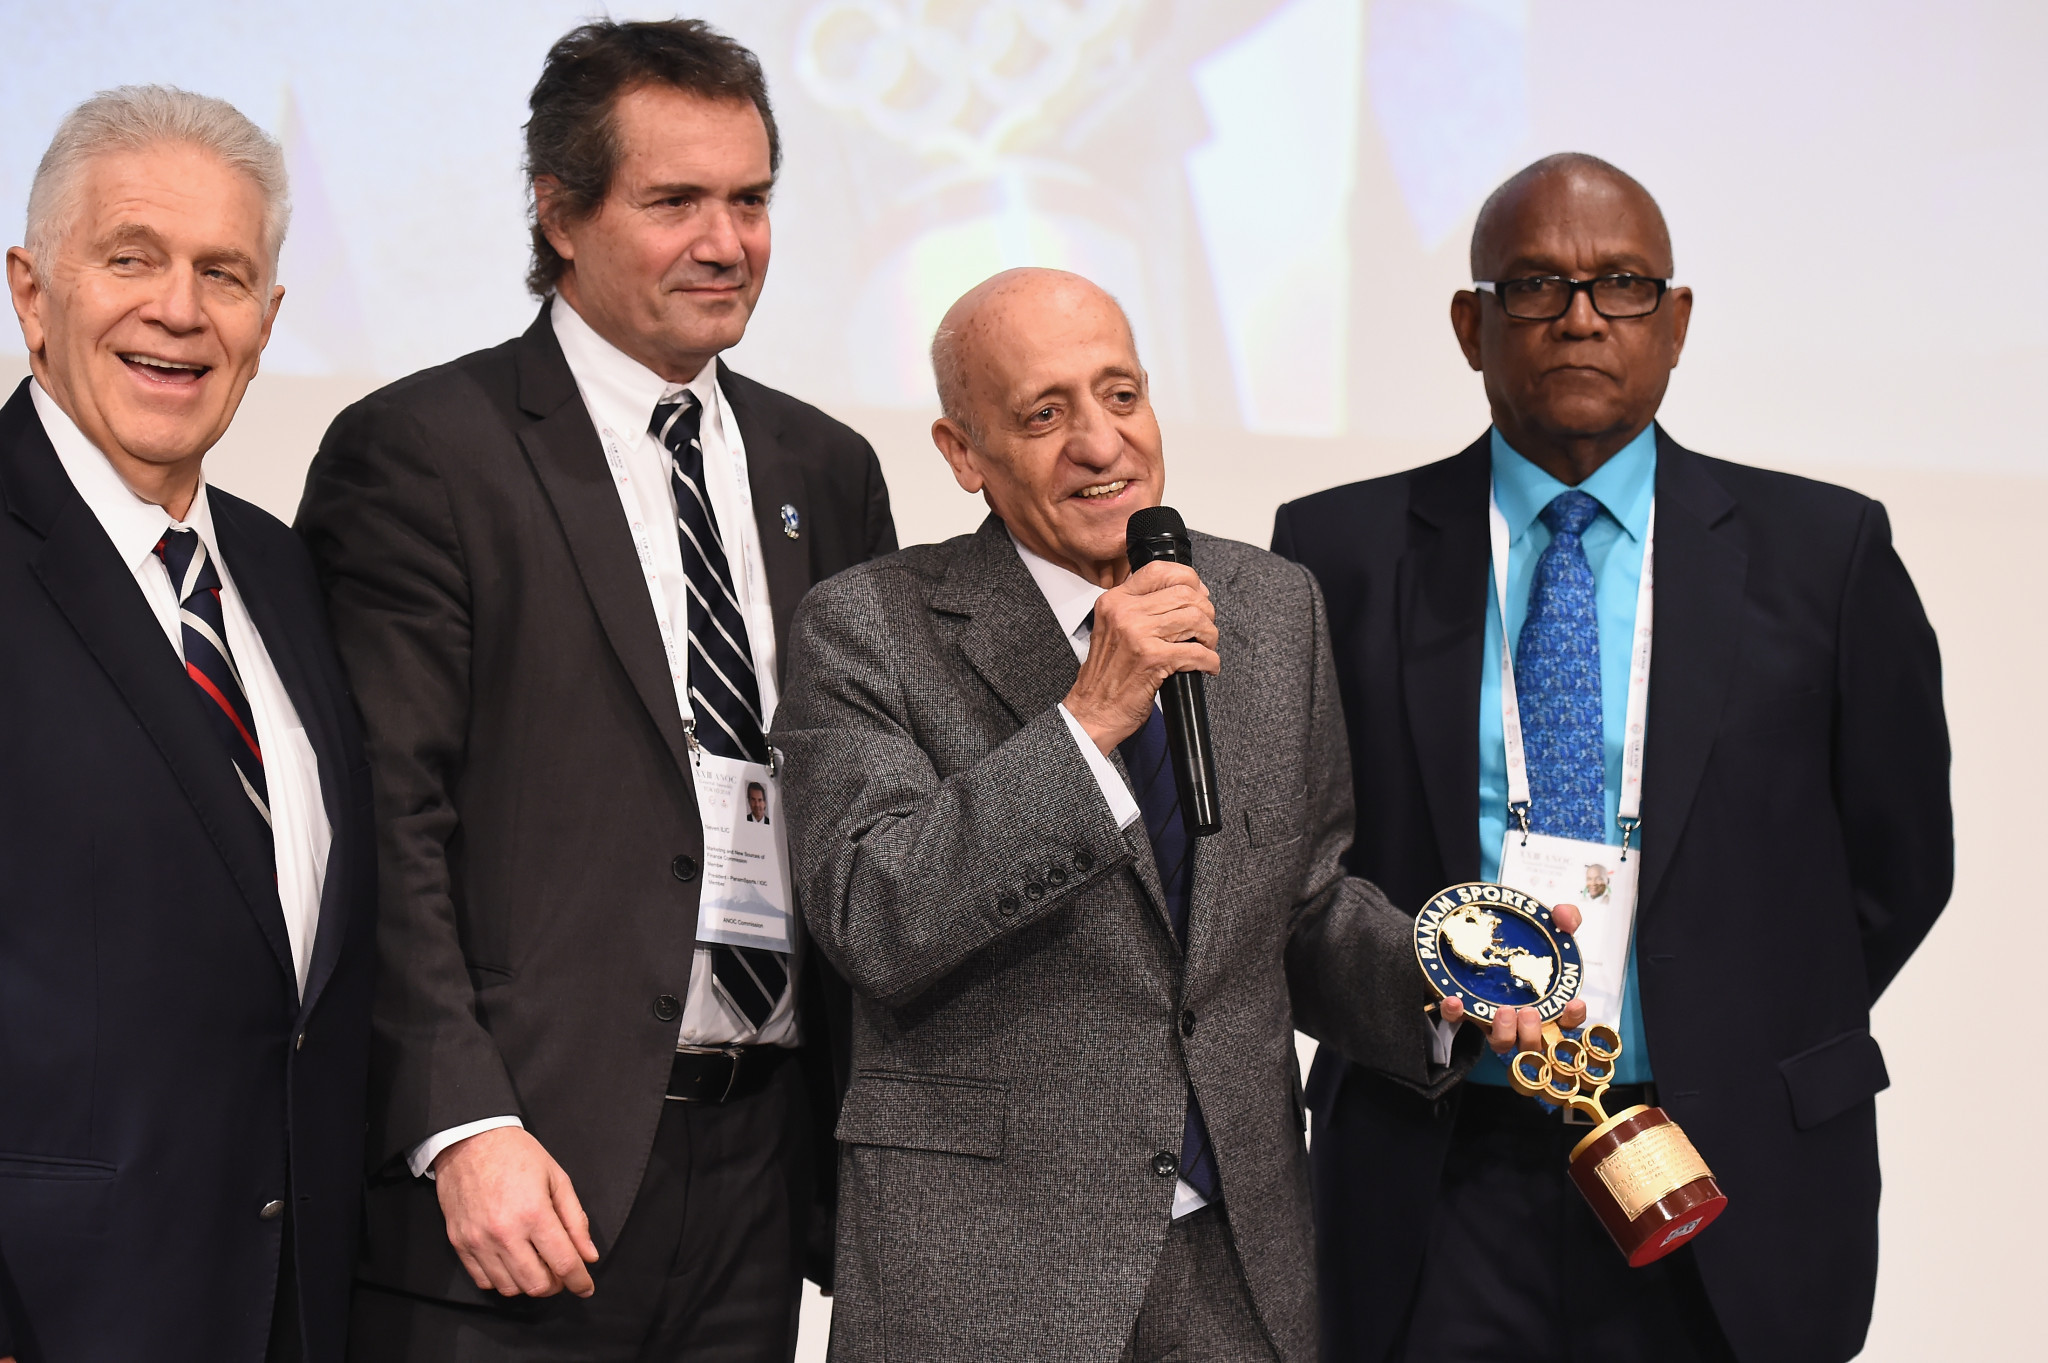 Panam Sports presented Julio Maglione with an award as he is set to be replaced as the body's vice-president ©Getty Images